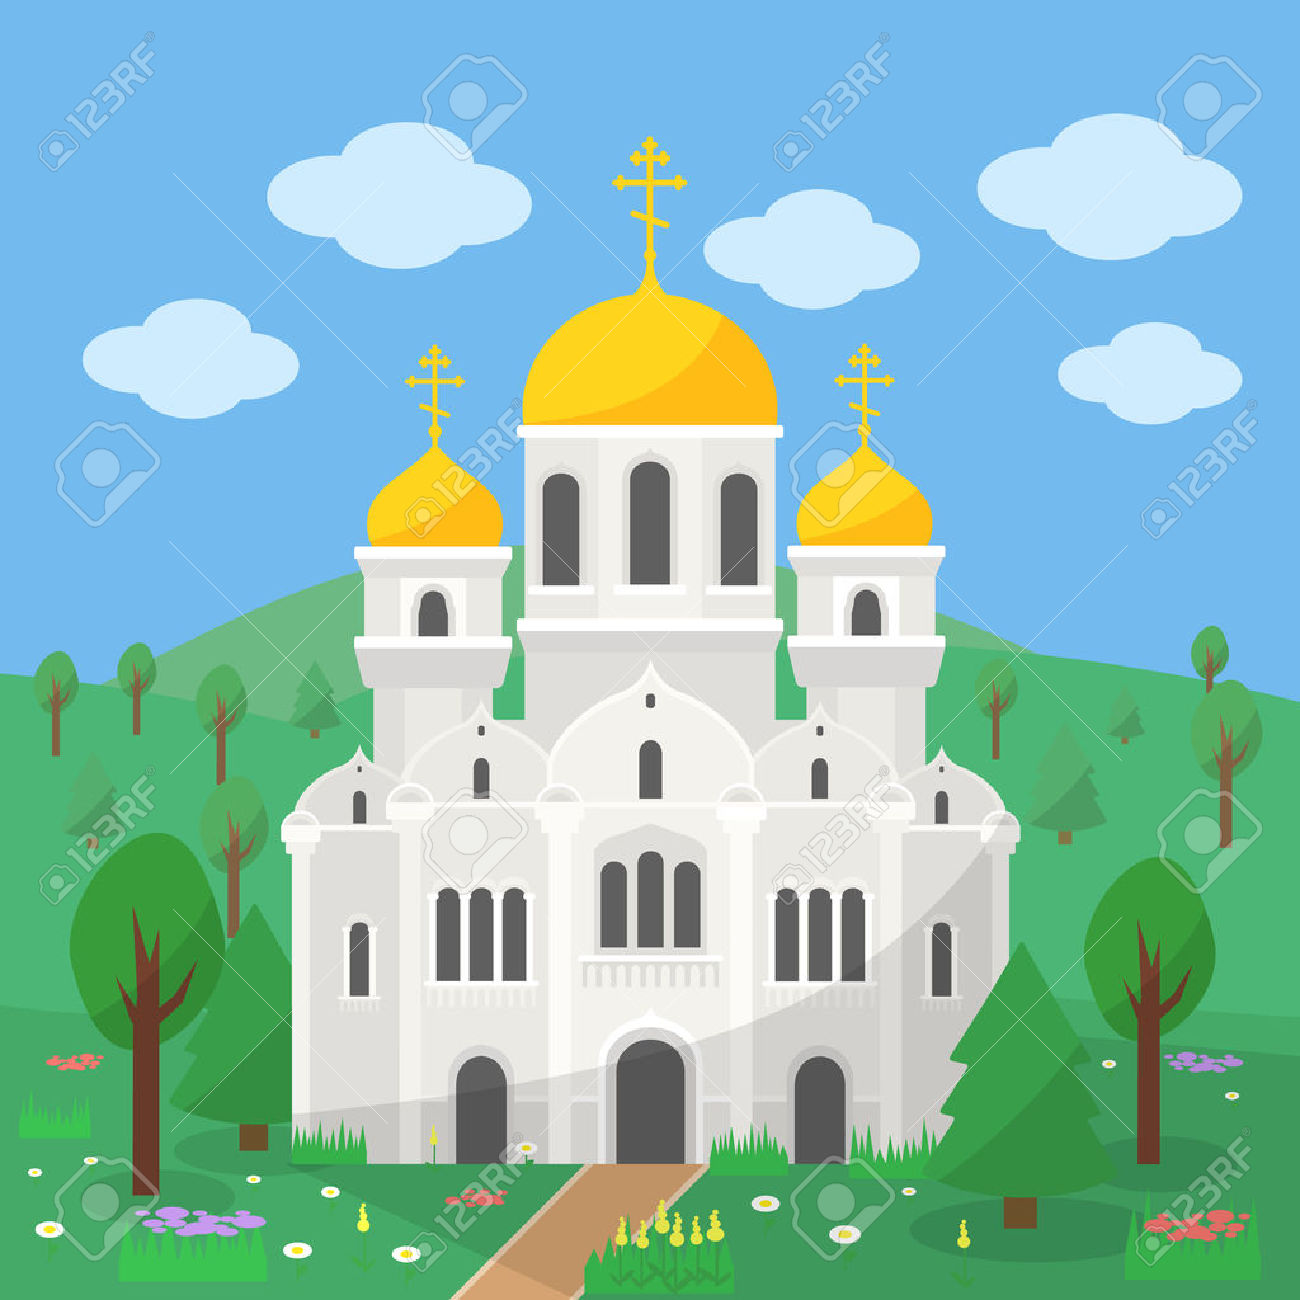 Orthodox Church, The Image Of The Church With Gold Domes On The.